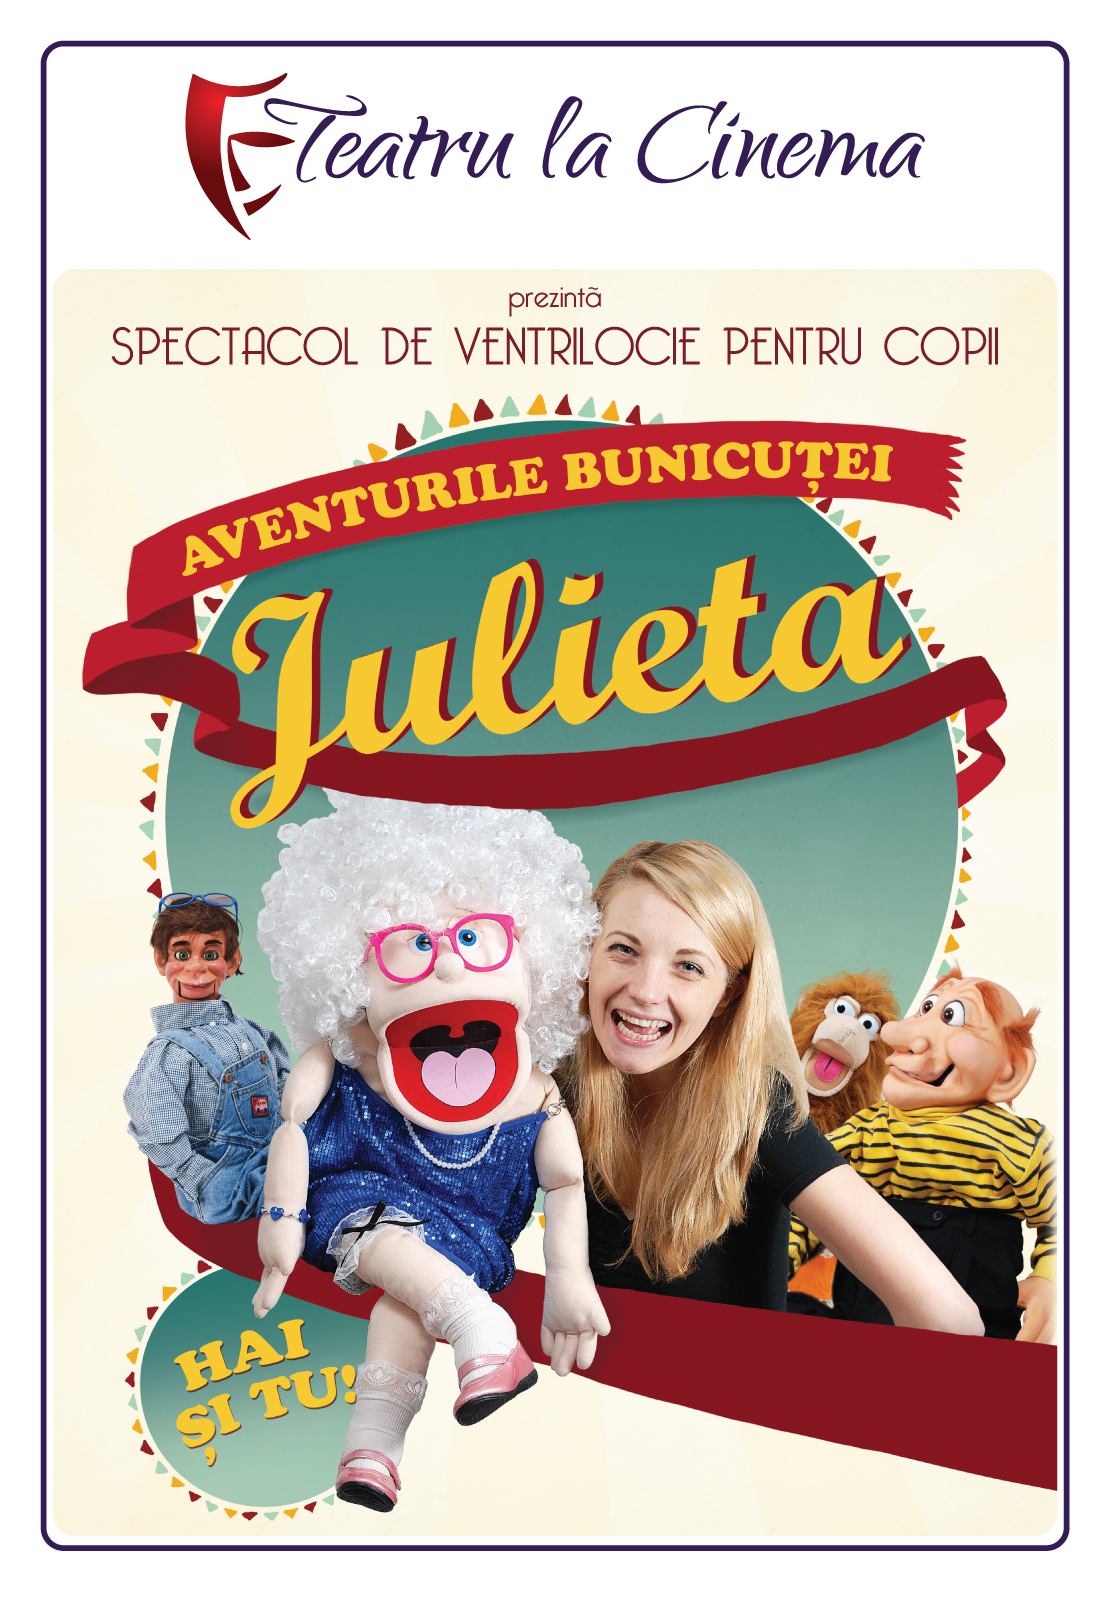 Aventurile bunicutei Julieta la Teatru la Cinema™ din Movieplex